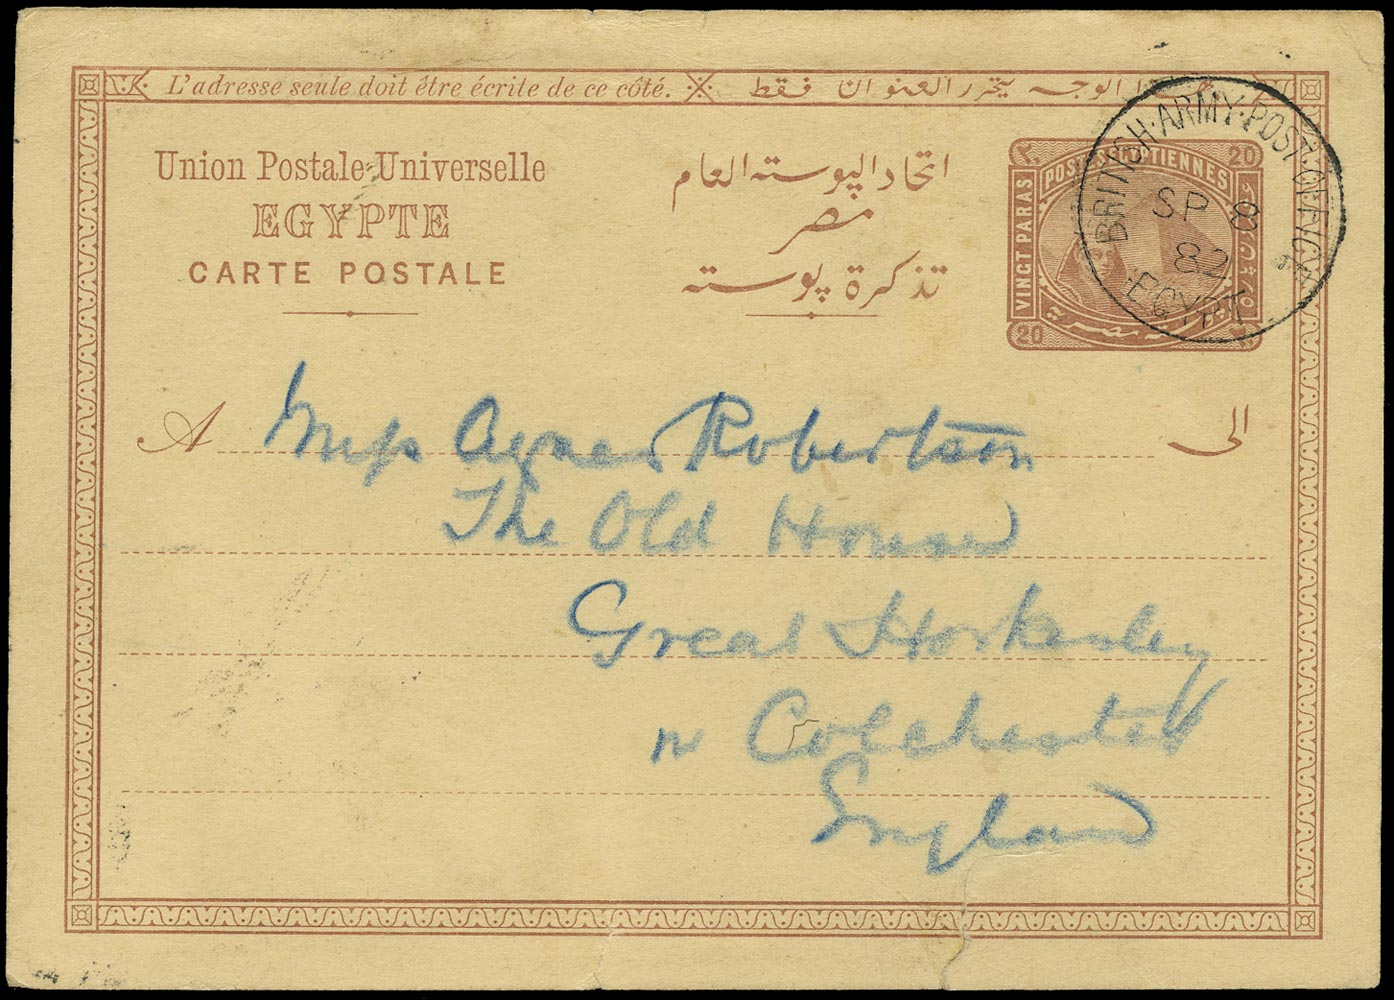 EGYPT BRITISH FORCES 1882 Cover Egyptian postcard used with British Army Post Office cds